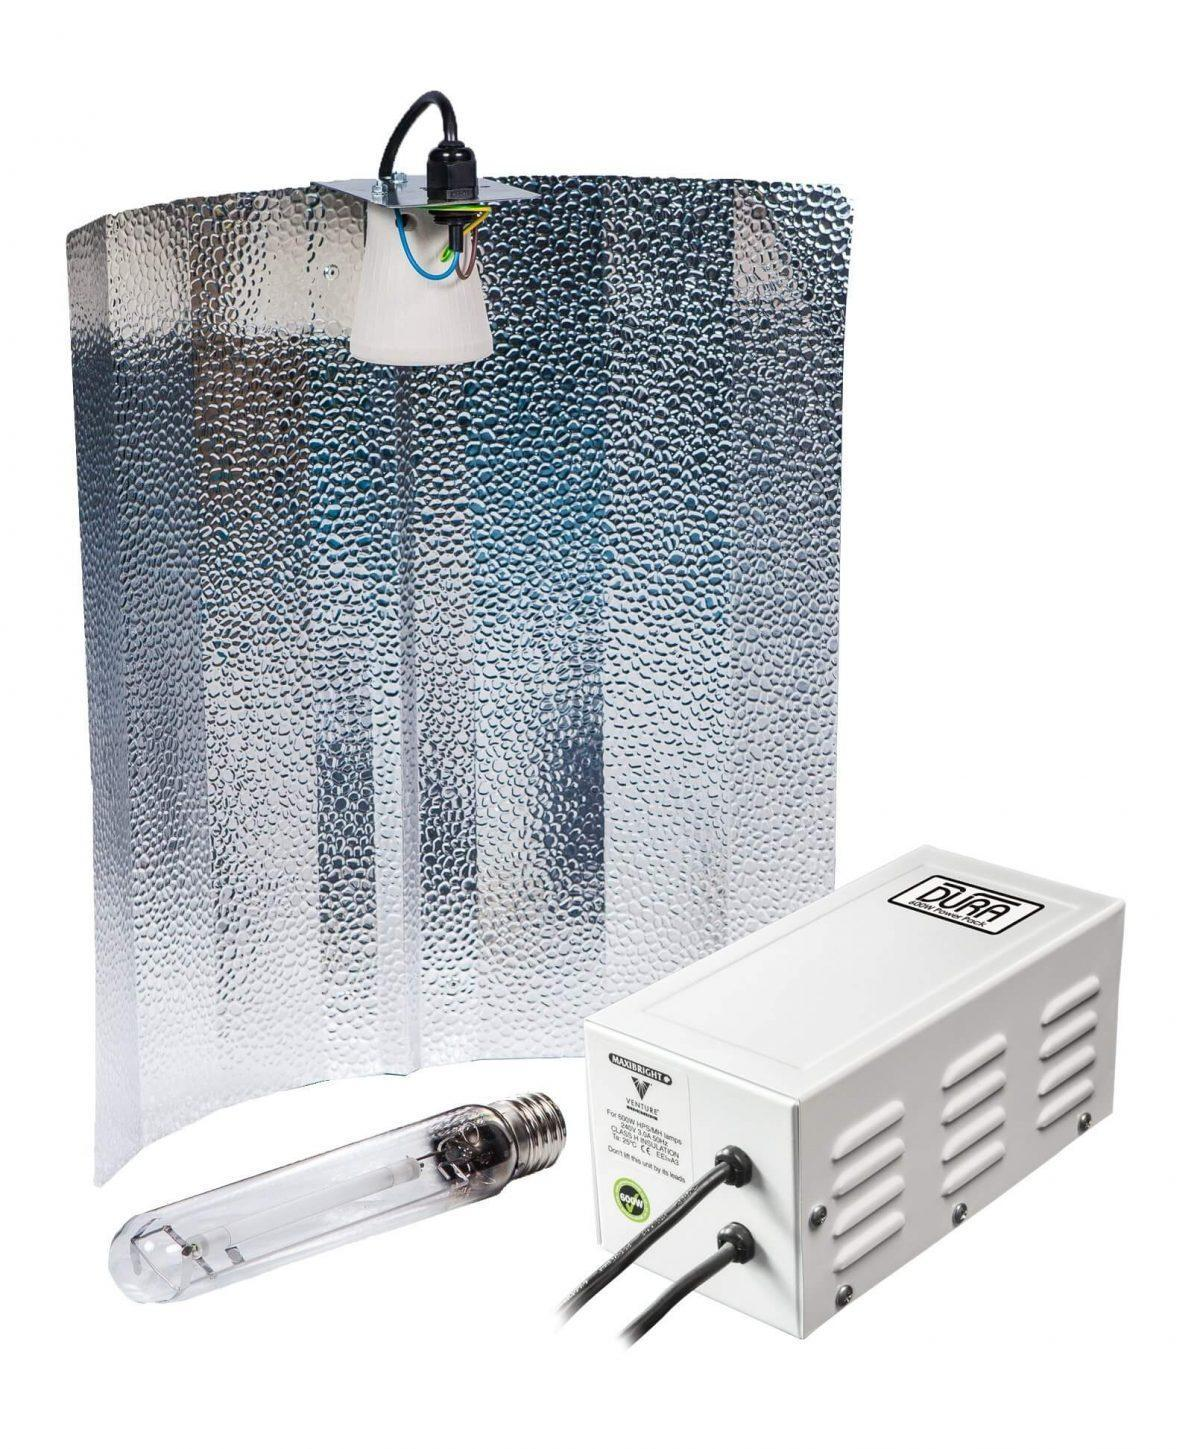 Maxibright DURA 600w lighting kit